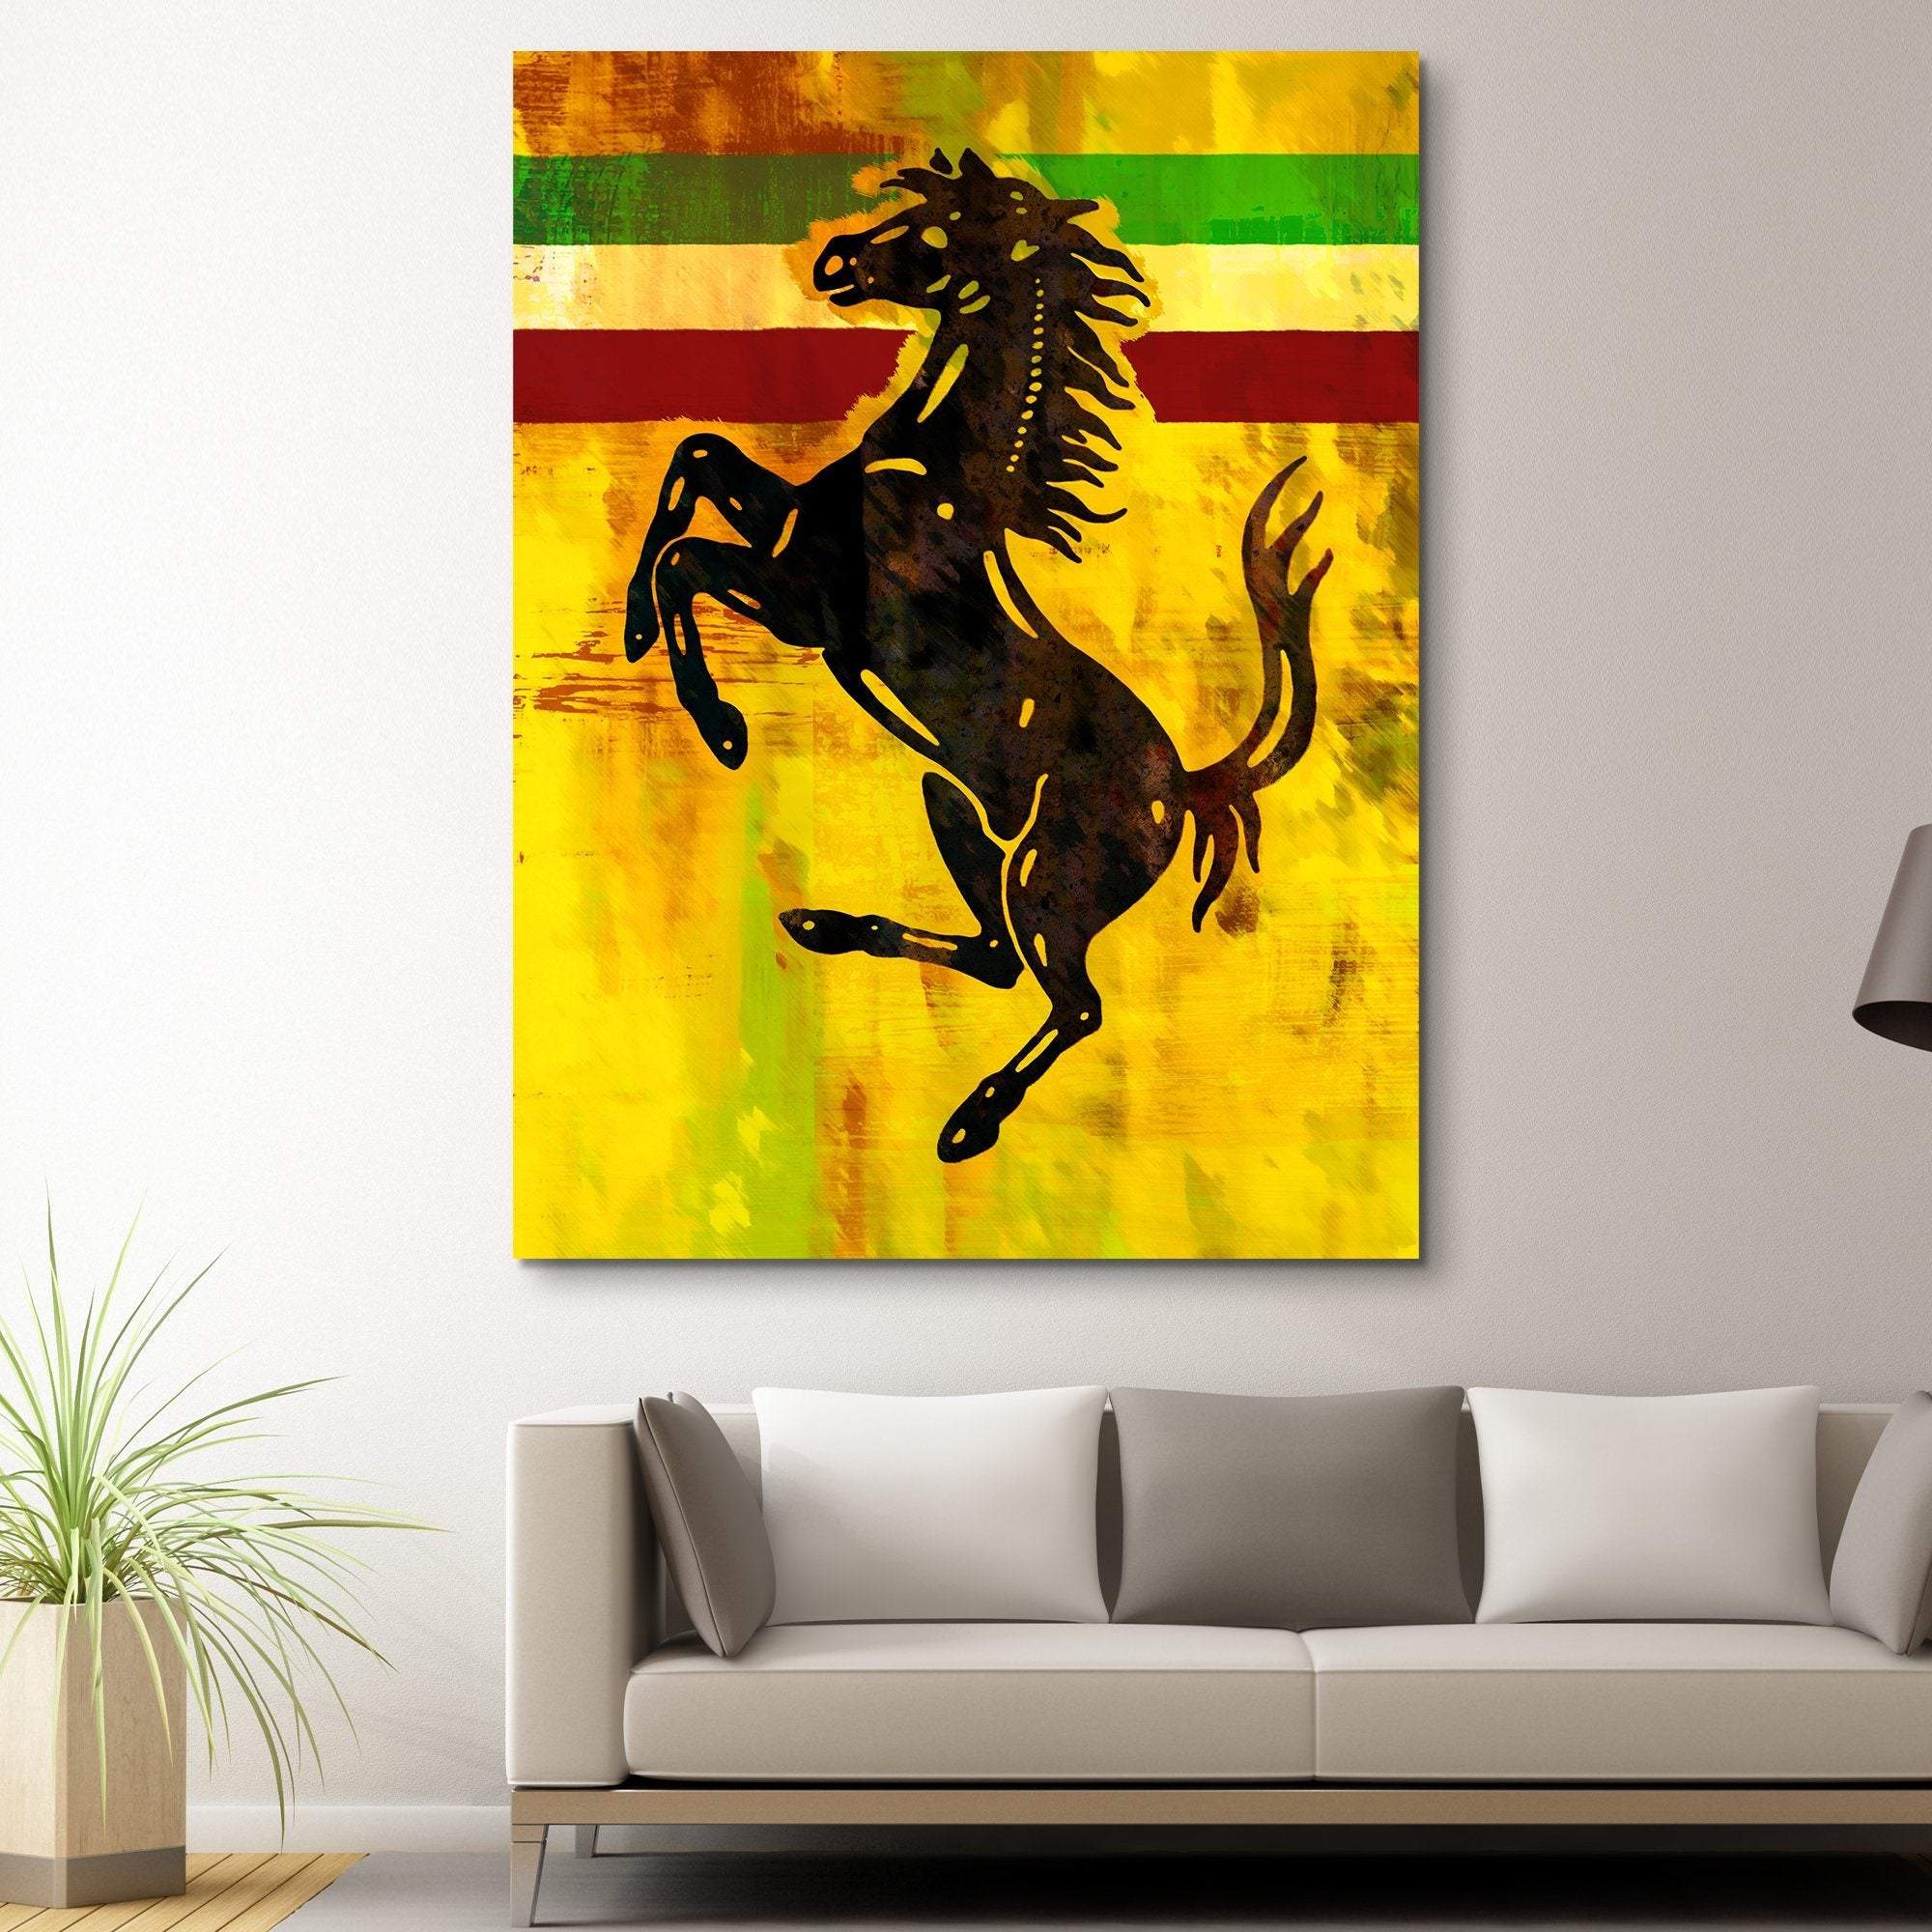 Ferrari Dreams wall art